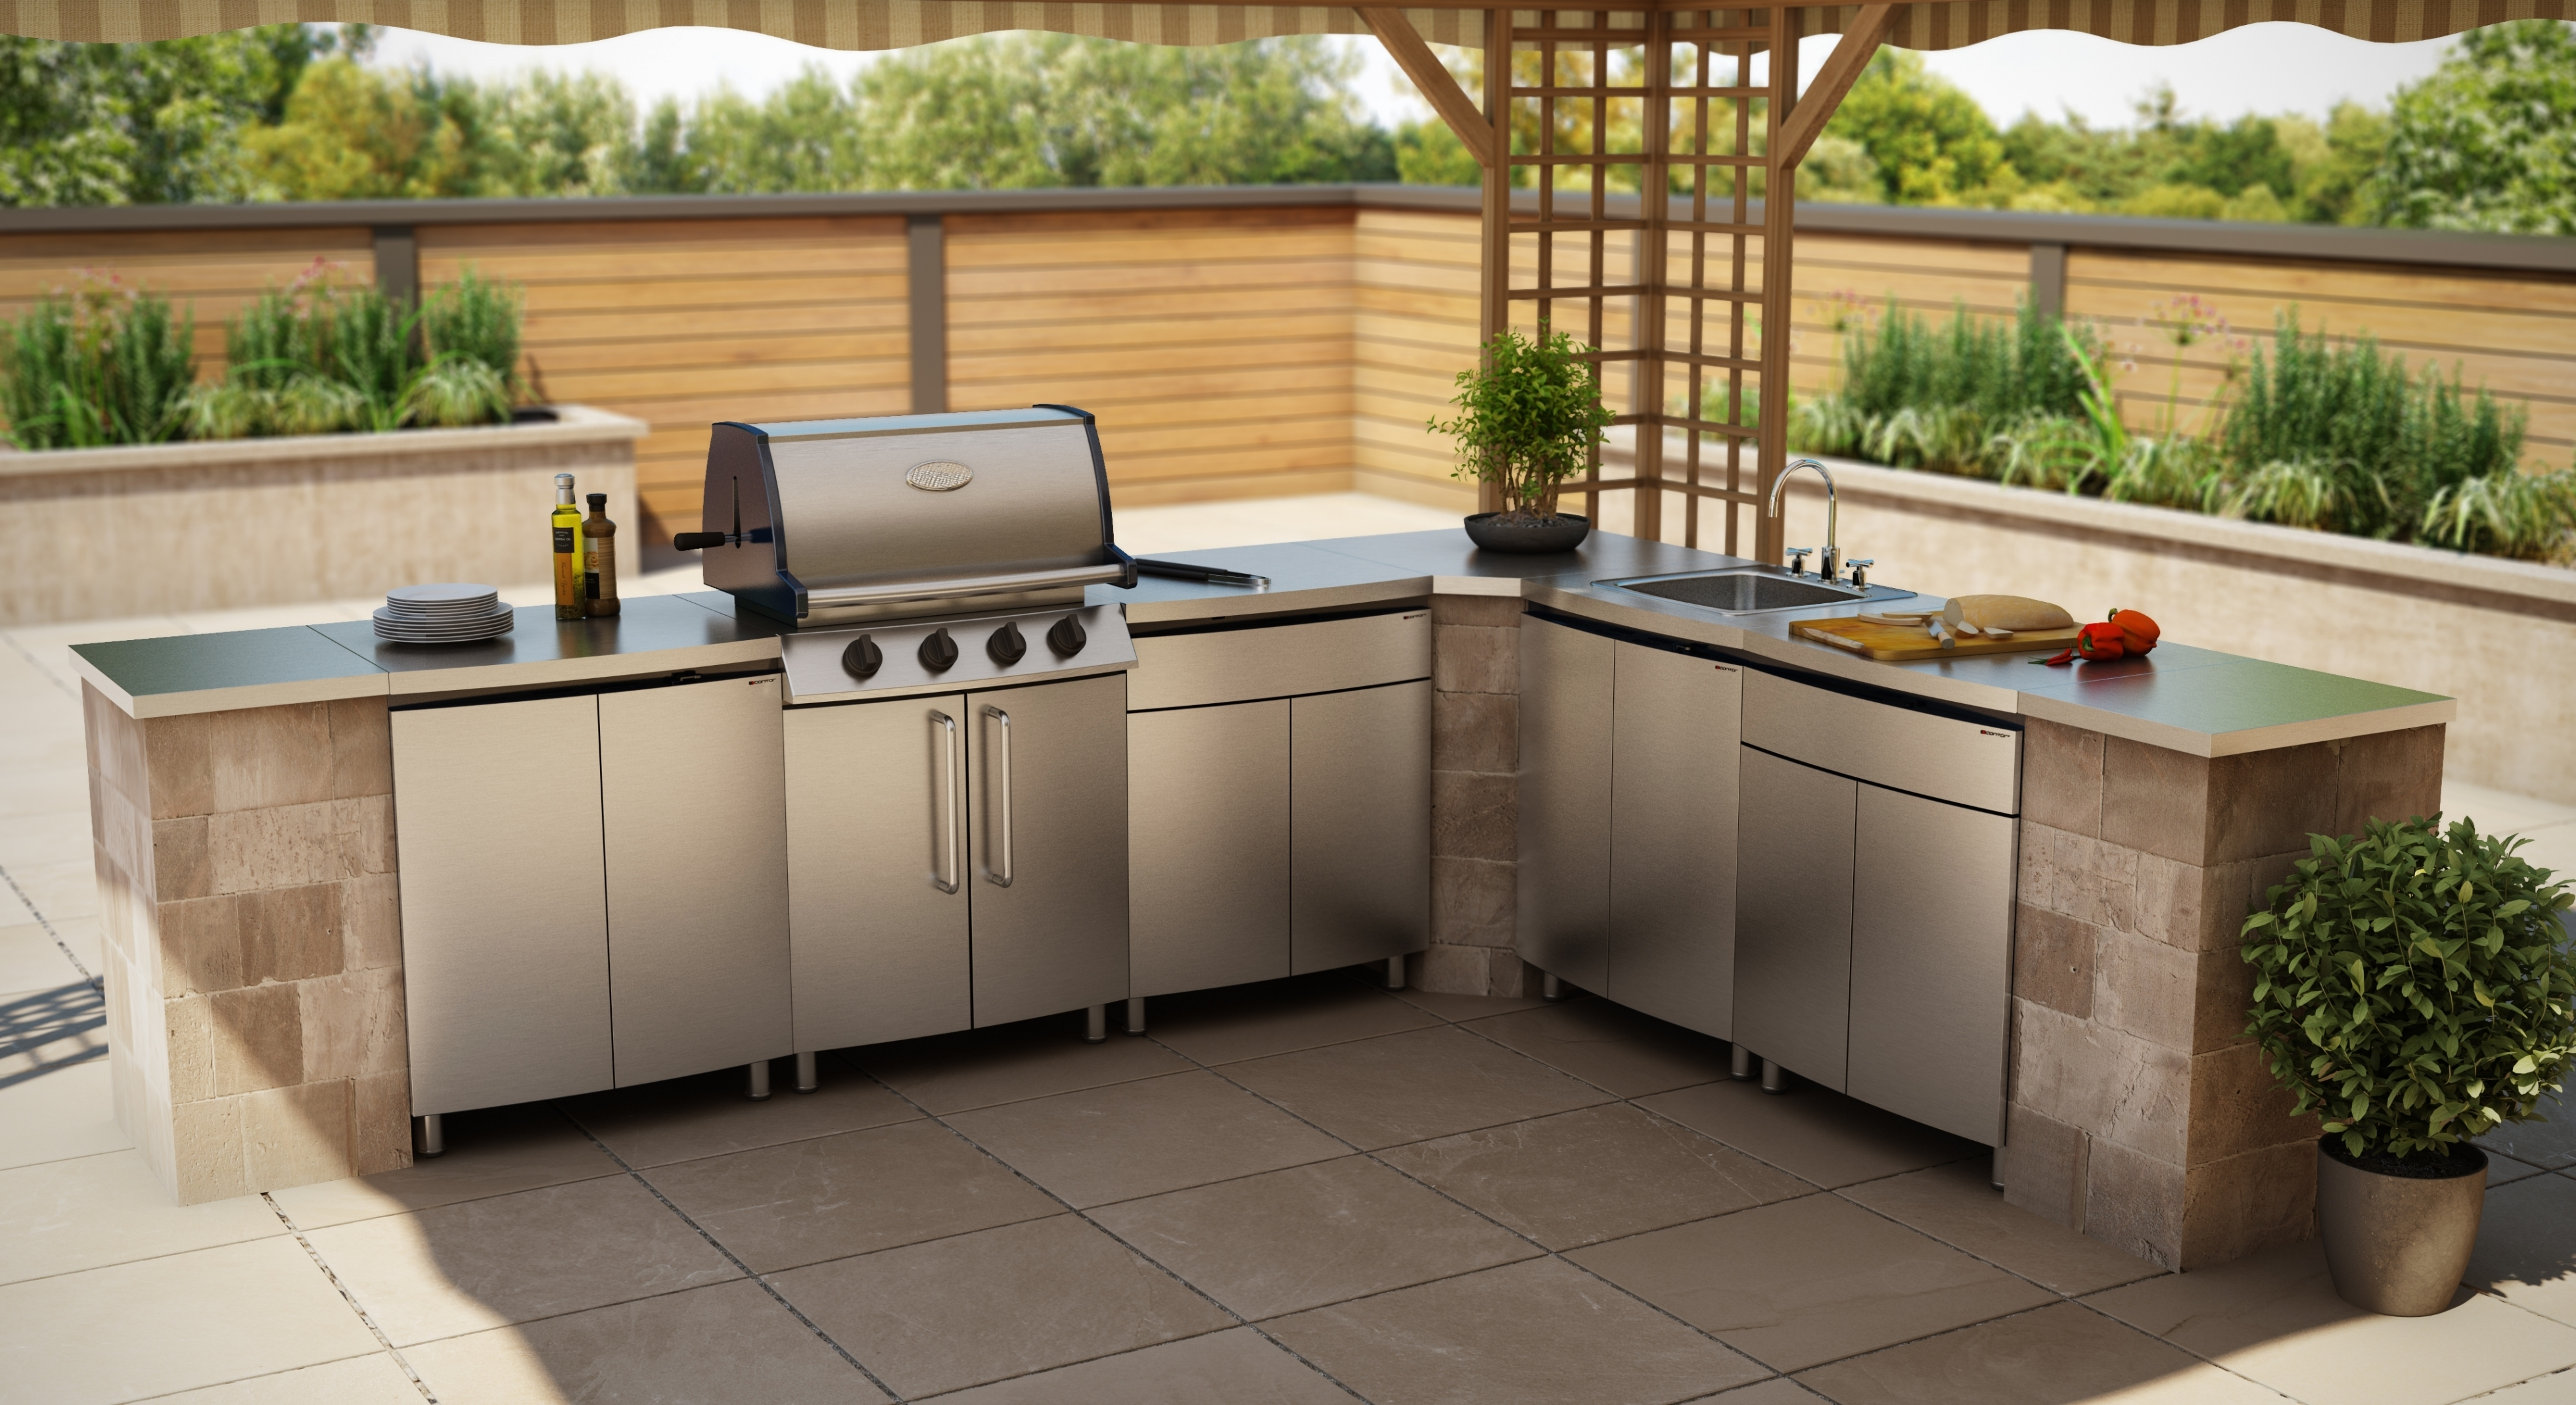 Stainless Cabinets For Outdoor Kitchens